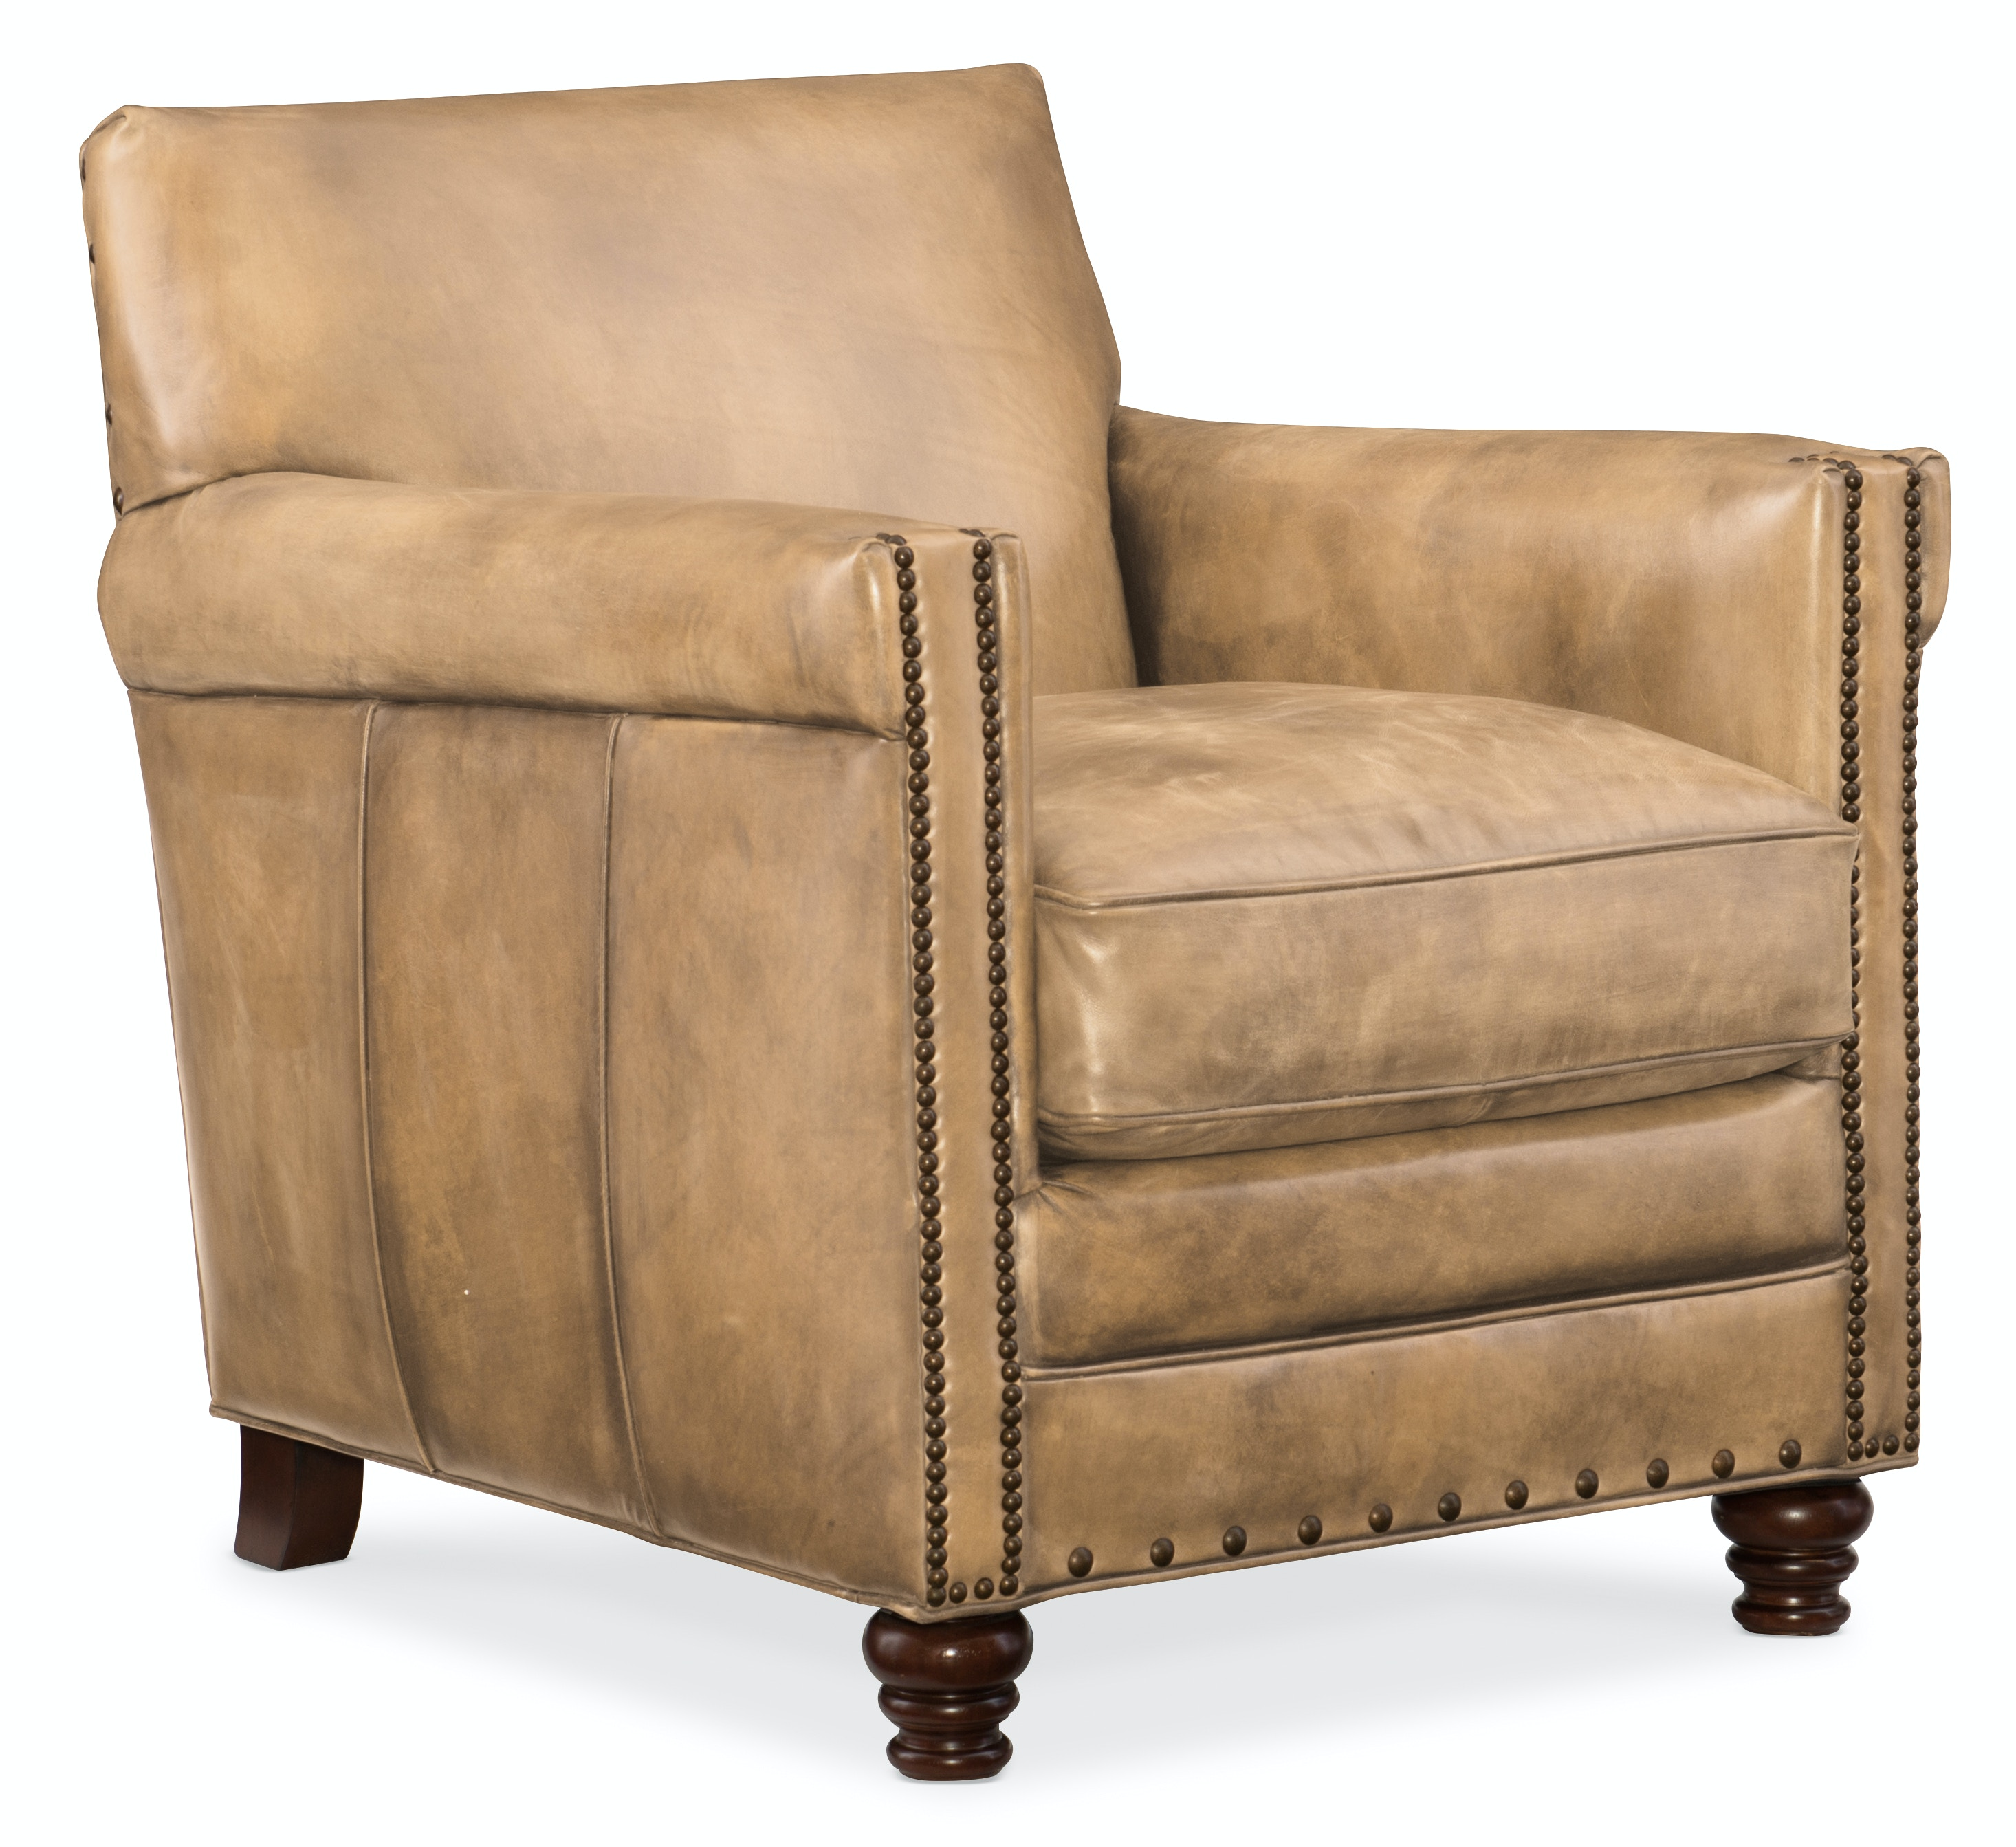 Potter Club Chair CC719-01-087